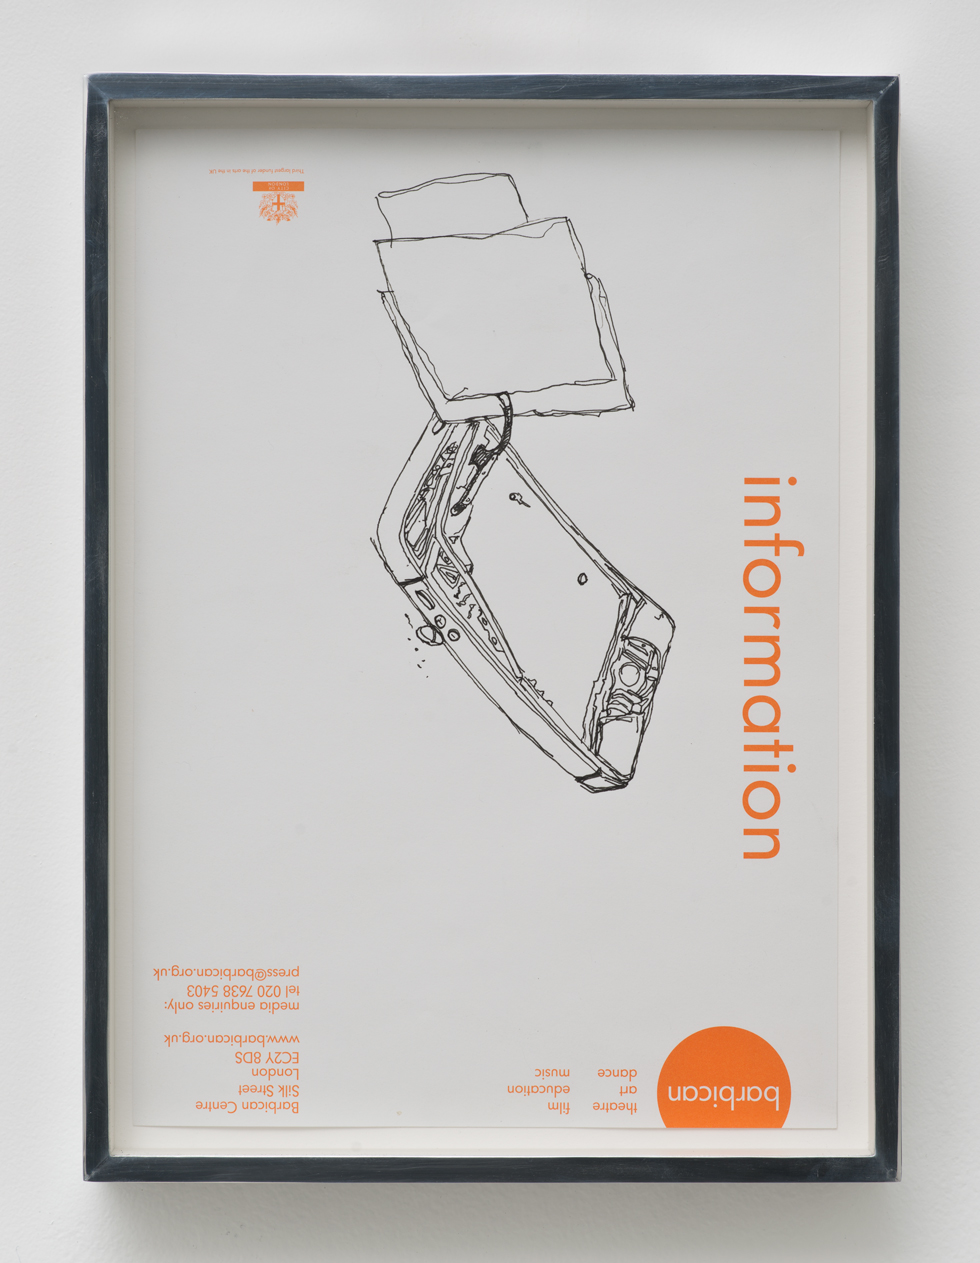 iPhone 5 A1429: Barbican Centre, London, United Kingdom, October 6, 2014    2015   Ink on letterhead  12 7/8 x 9 1/2 inches   Walid AlBeshti, 2015